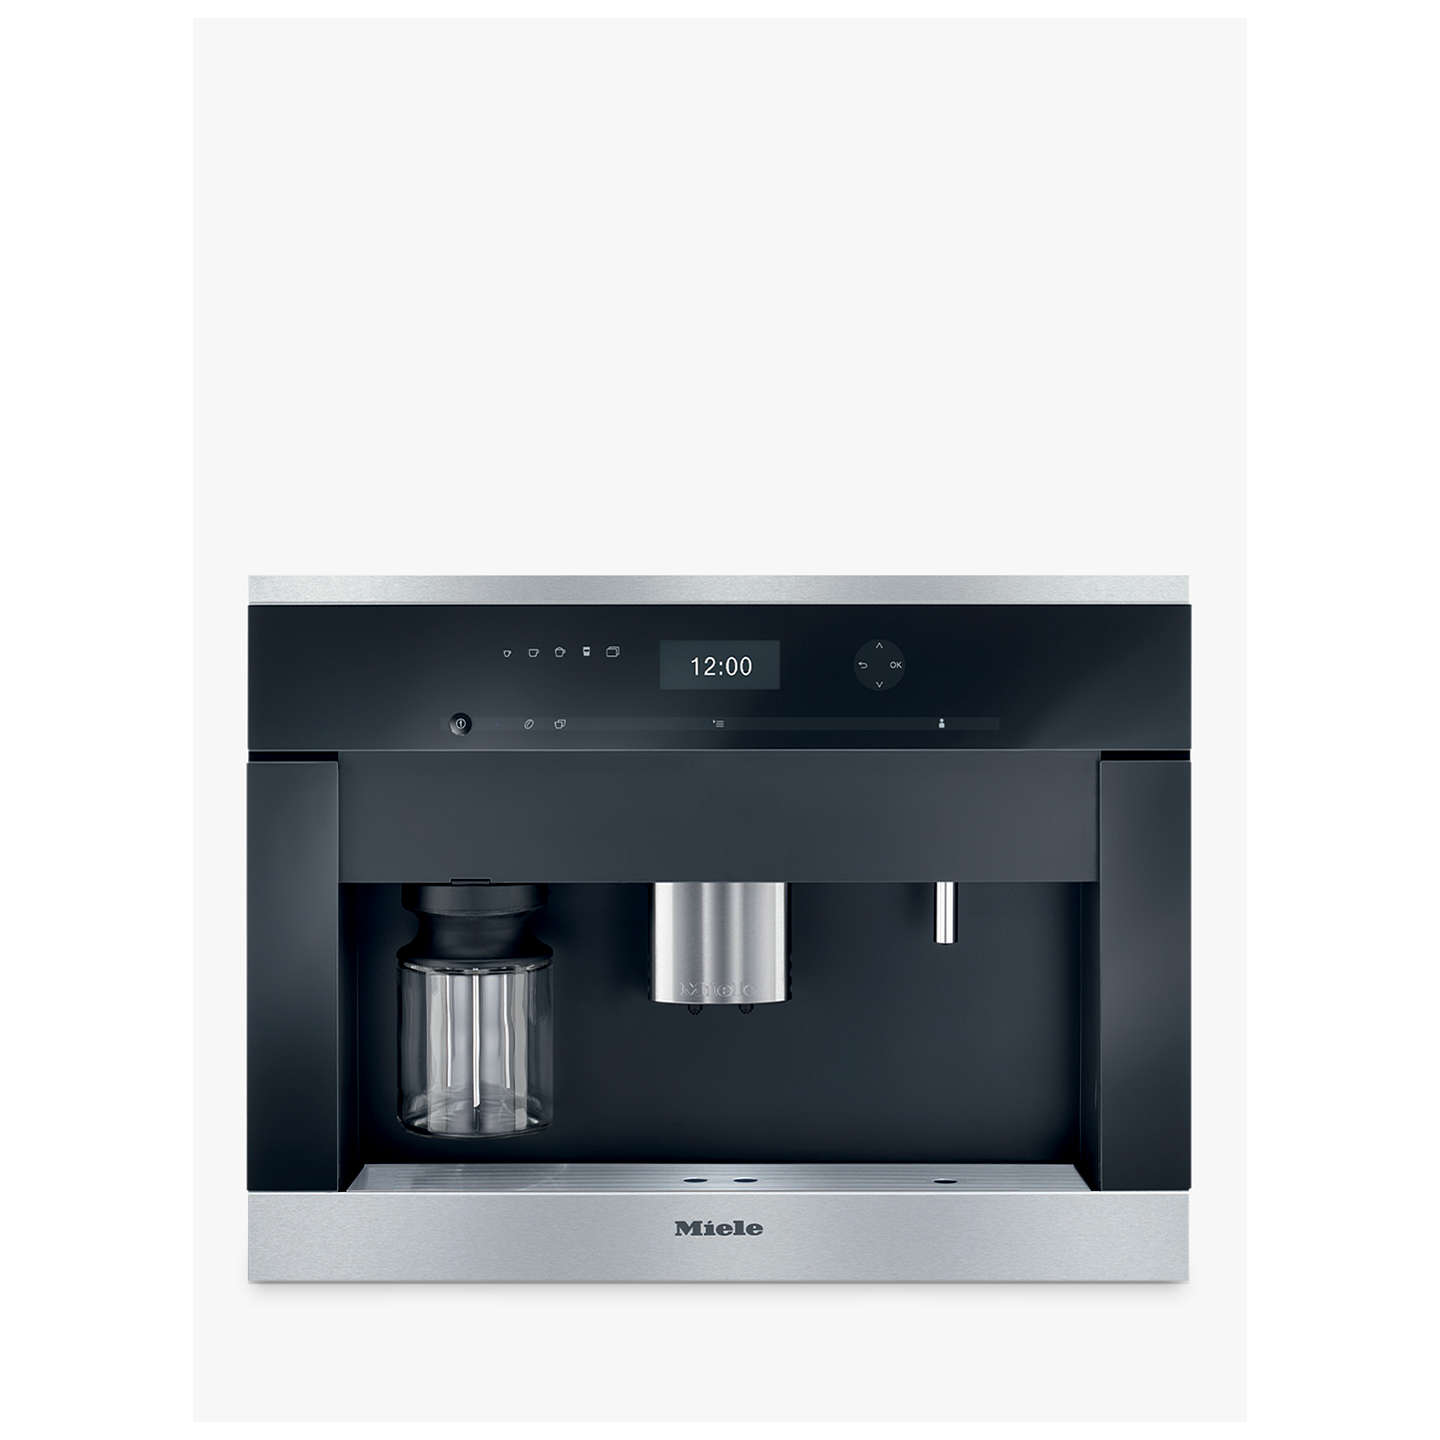 miele cva 6401 built in bean to cup coffee machine clean steel at john lewis. Black Bedroom Furniture Sets. Home Design Ideas